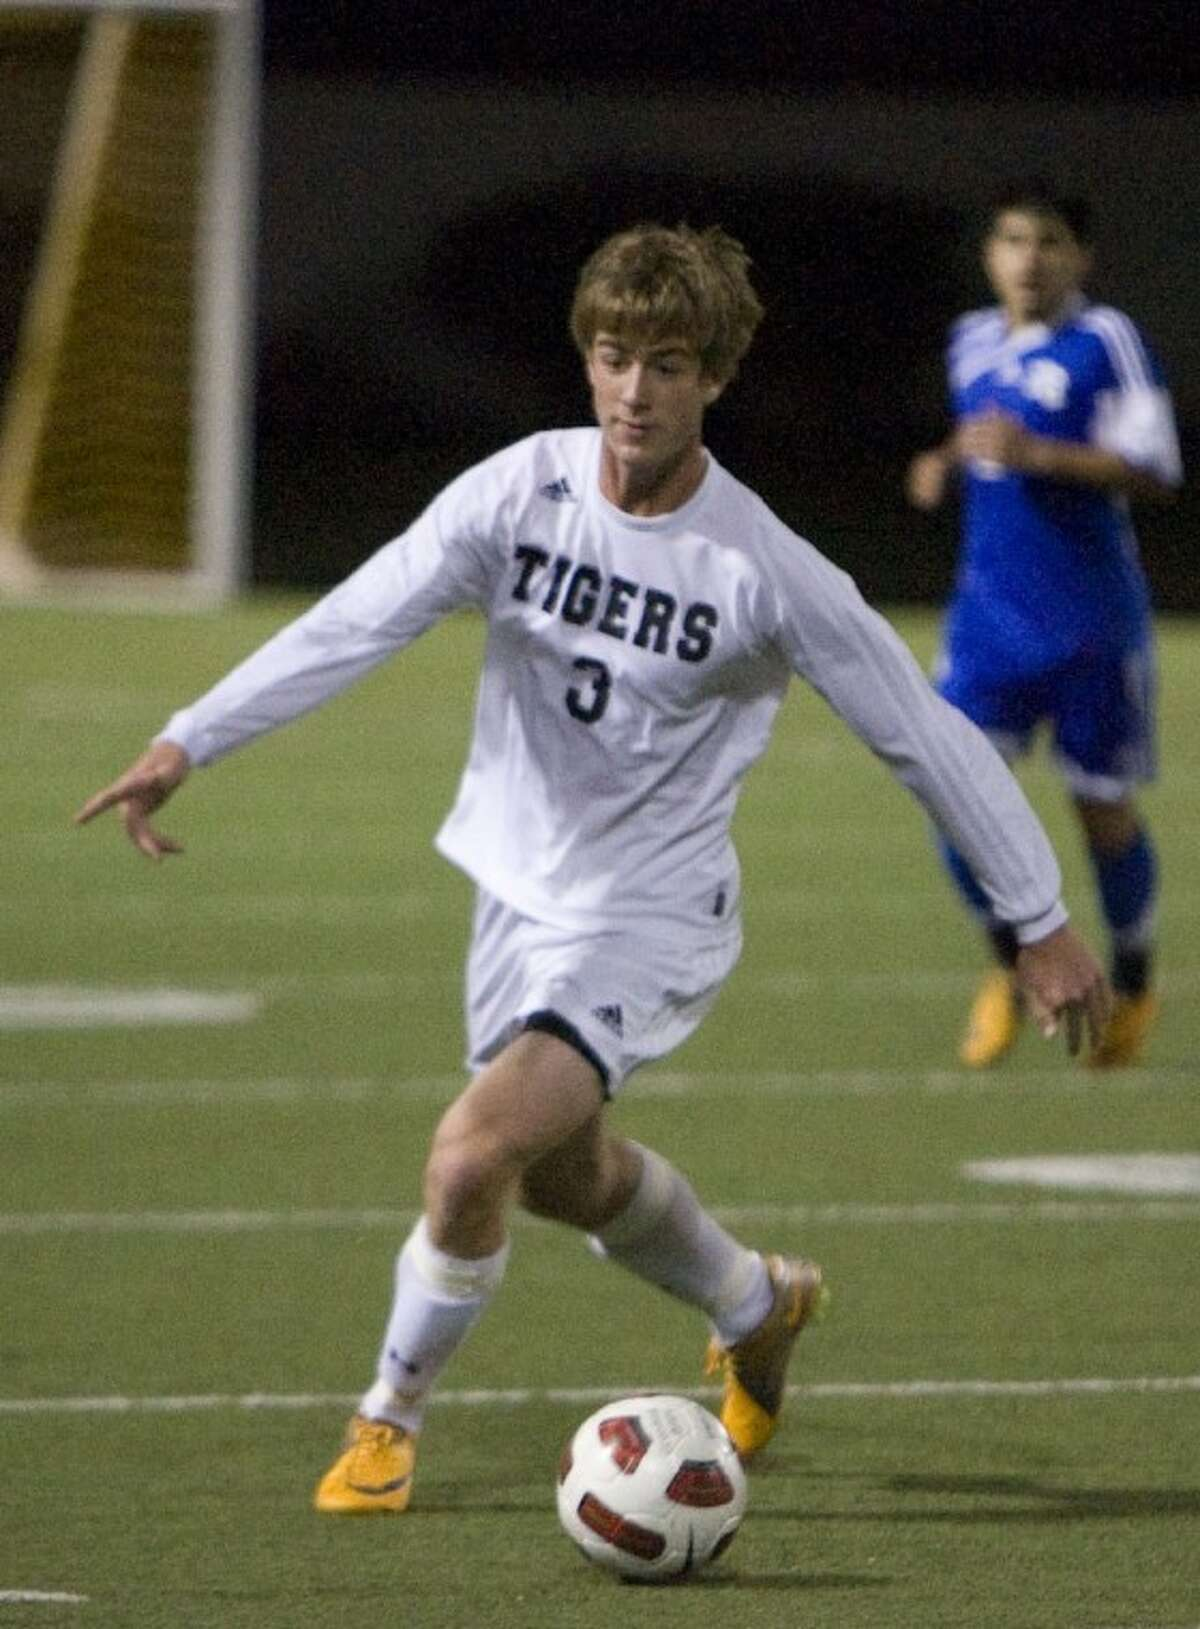 Conroe's Jonathan Cutaia dribbles downfield during Tuesday night's game against New Caney at Moorhead Stadium in Conroe.